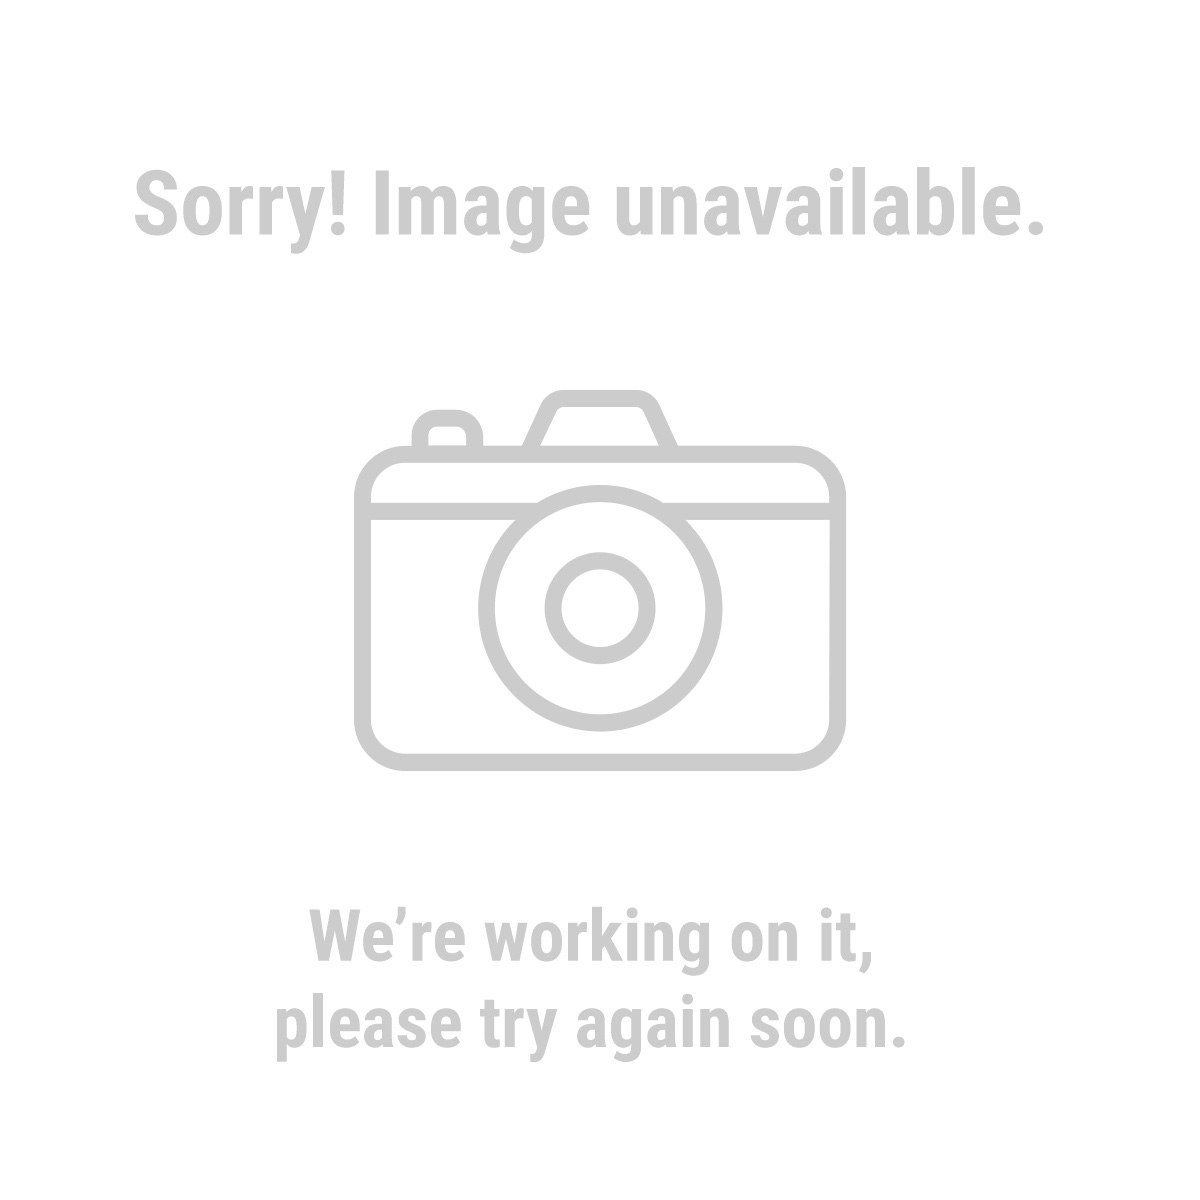 U.S. General® 99729 6 Compartment Drawer Organizer